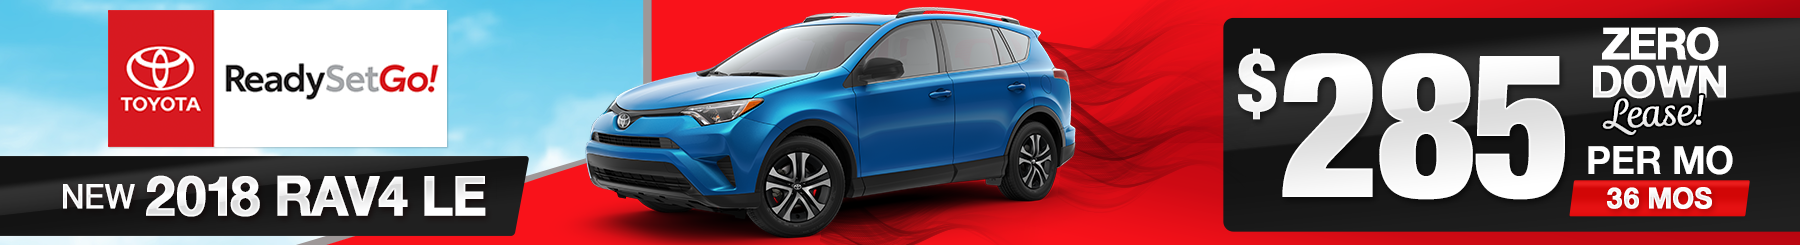 Toyota-RAV4-Lease-Specials